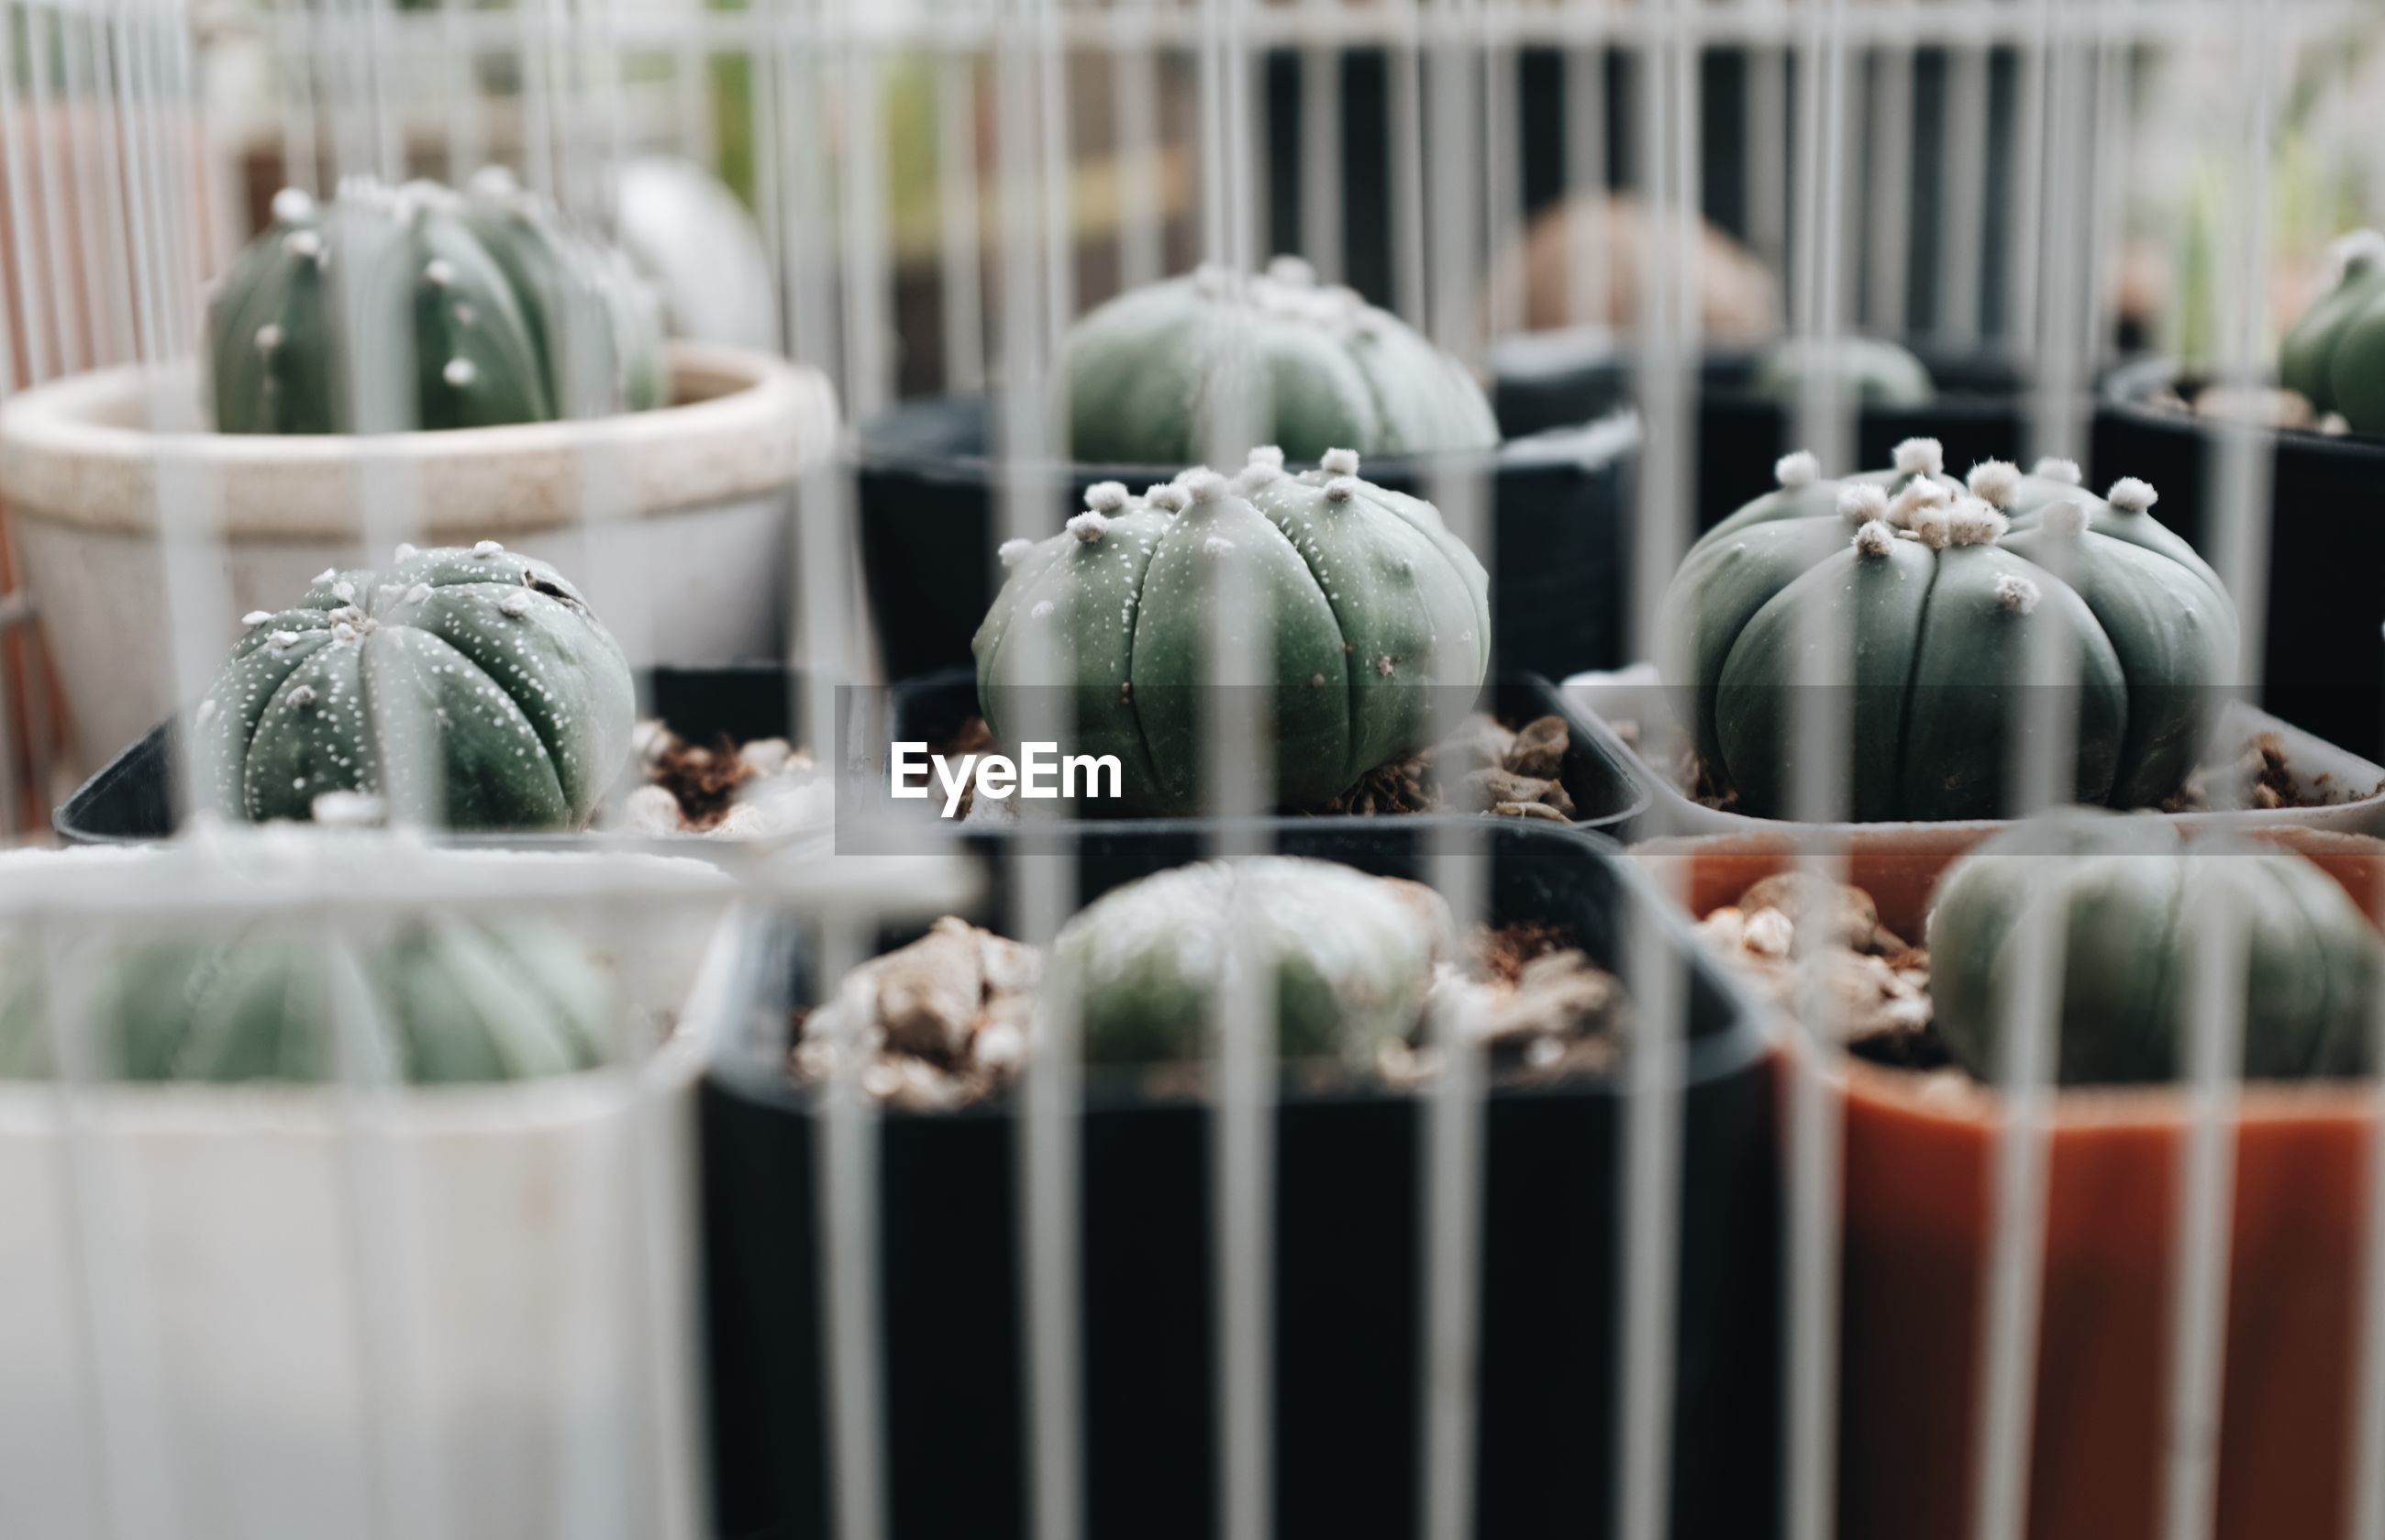 A close up shot of a cactus in a pot arranged in a row in a white cage